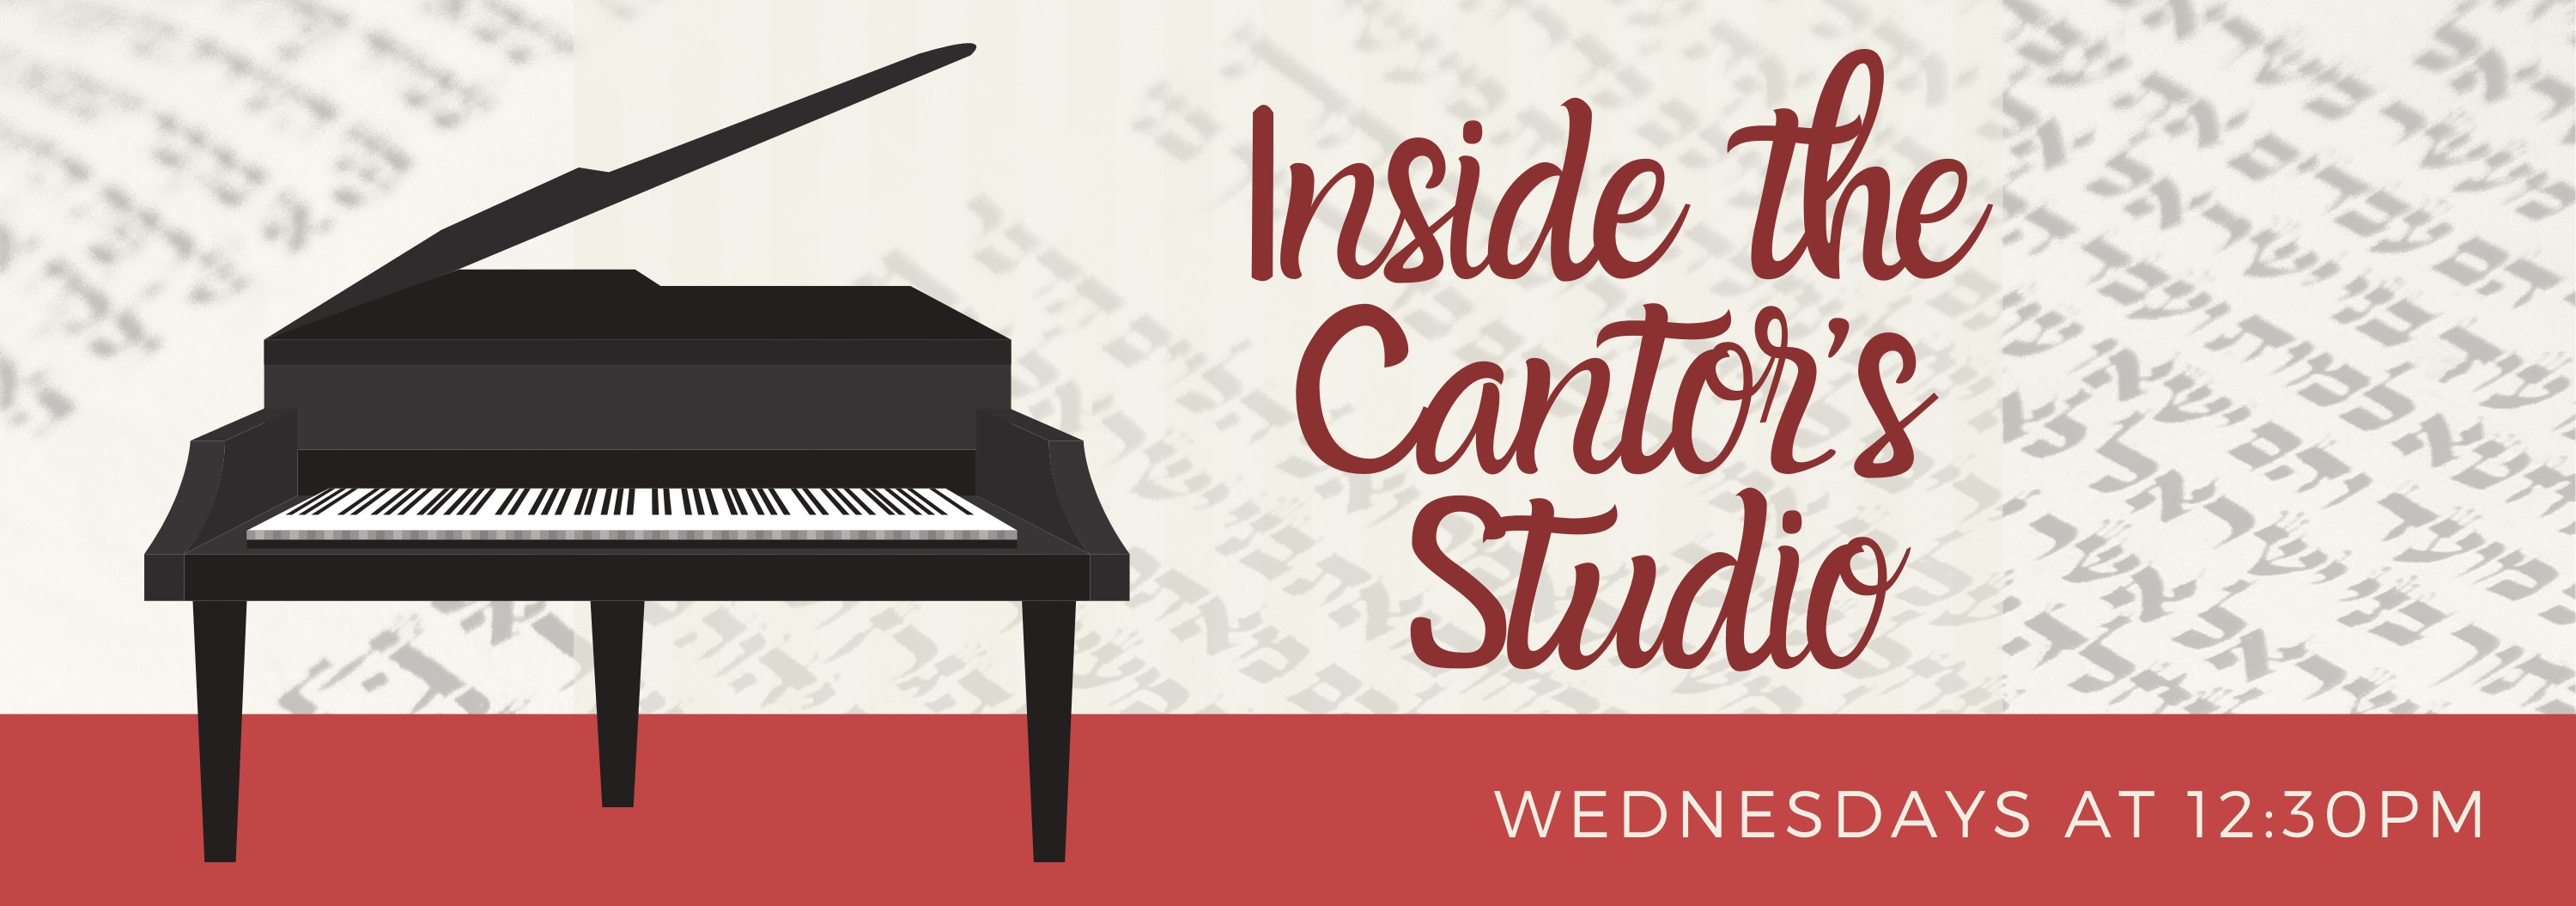 Banner Image for Inside the Cantor's Studio